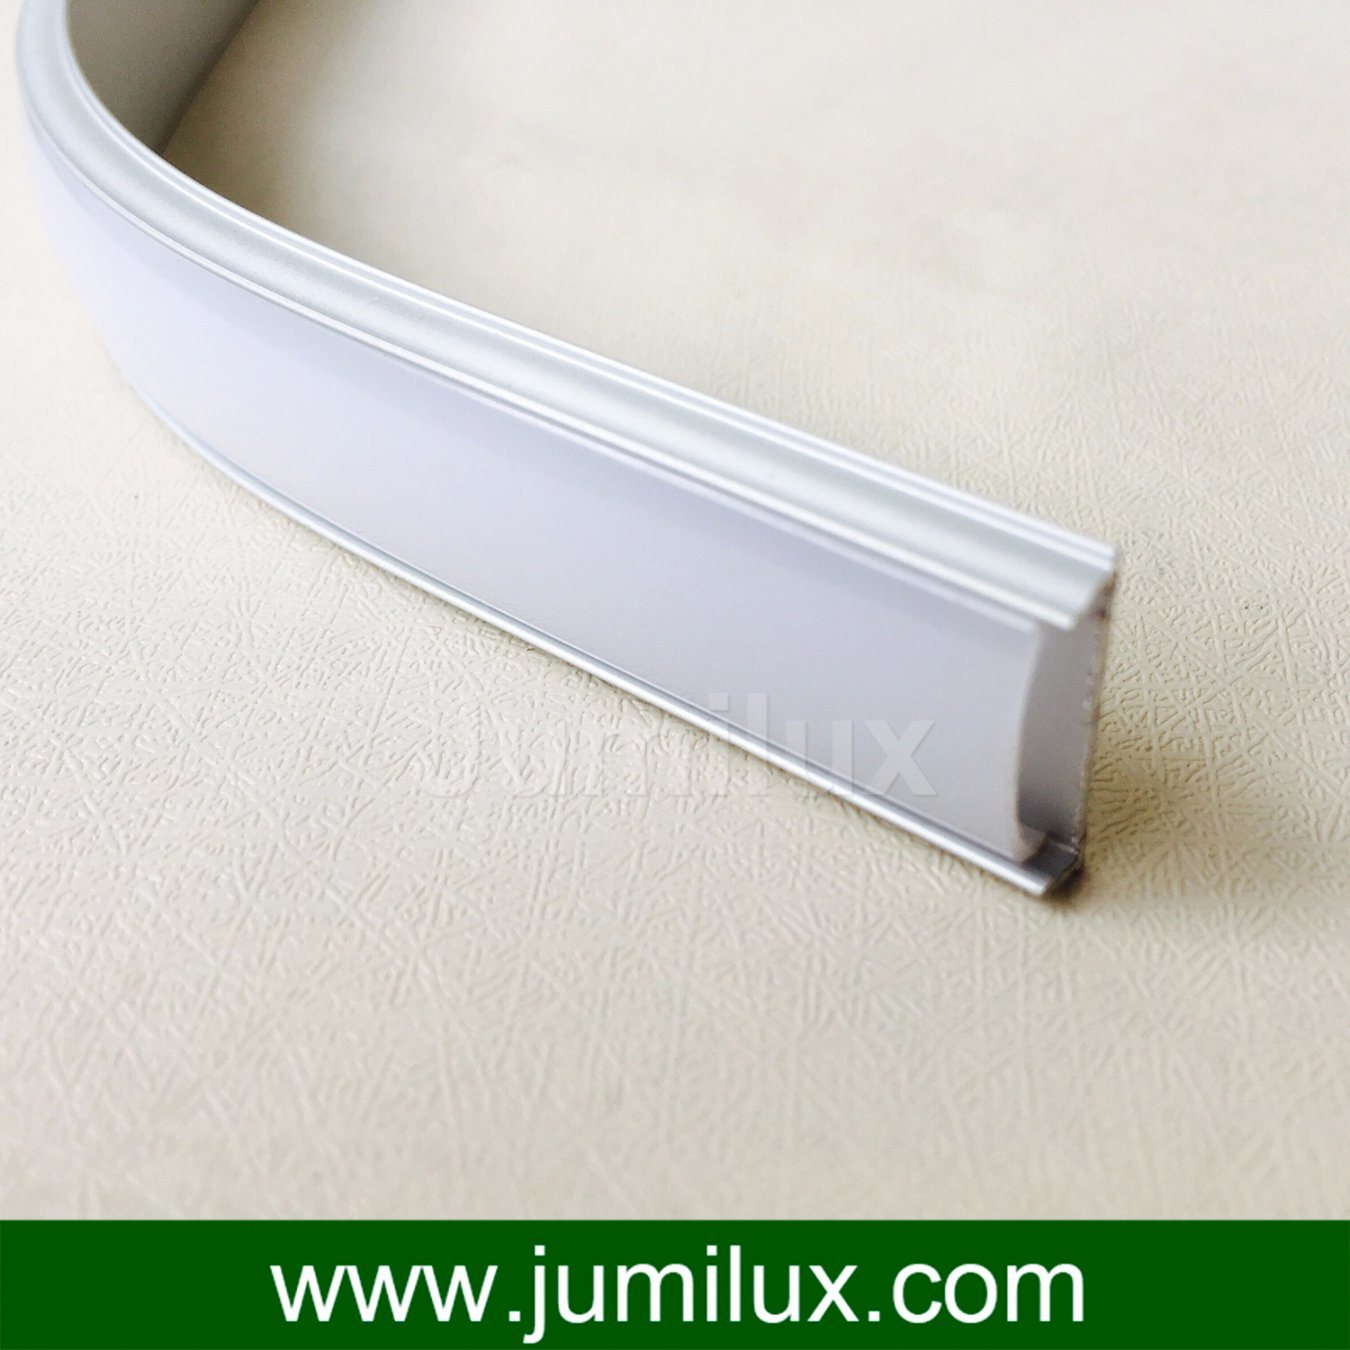 Bendable LED Channel Aluminum Extrusions Profile pictures & photos